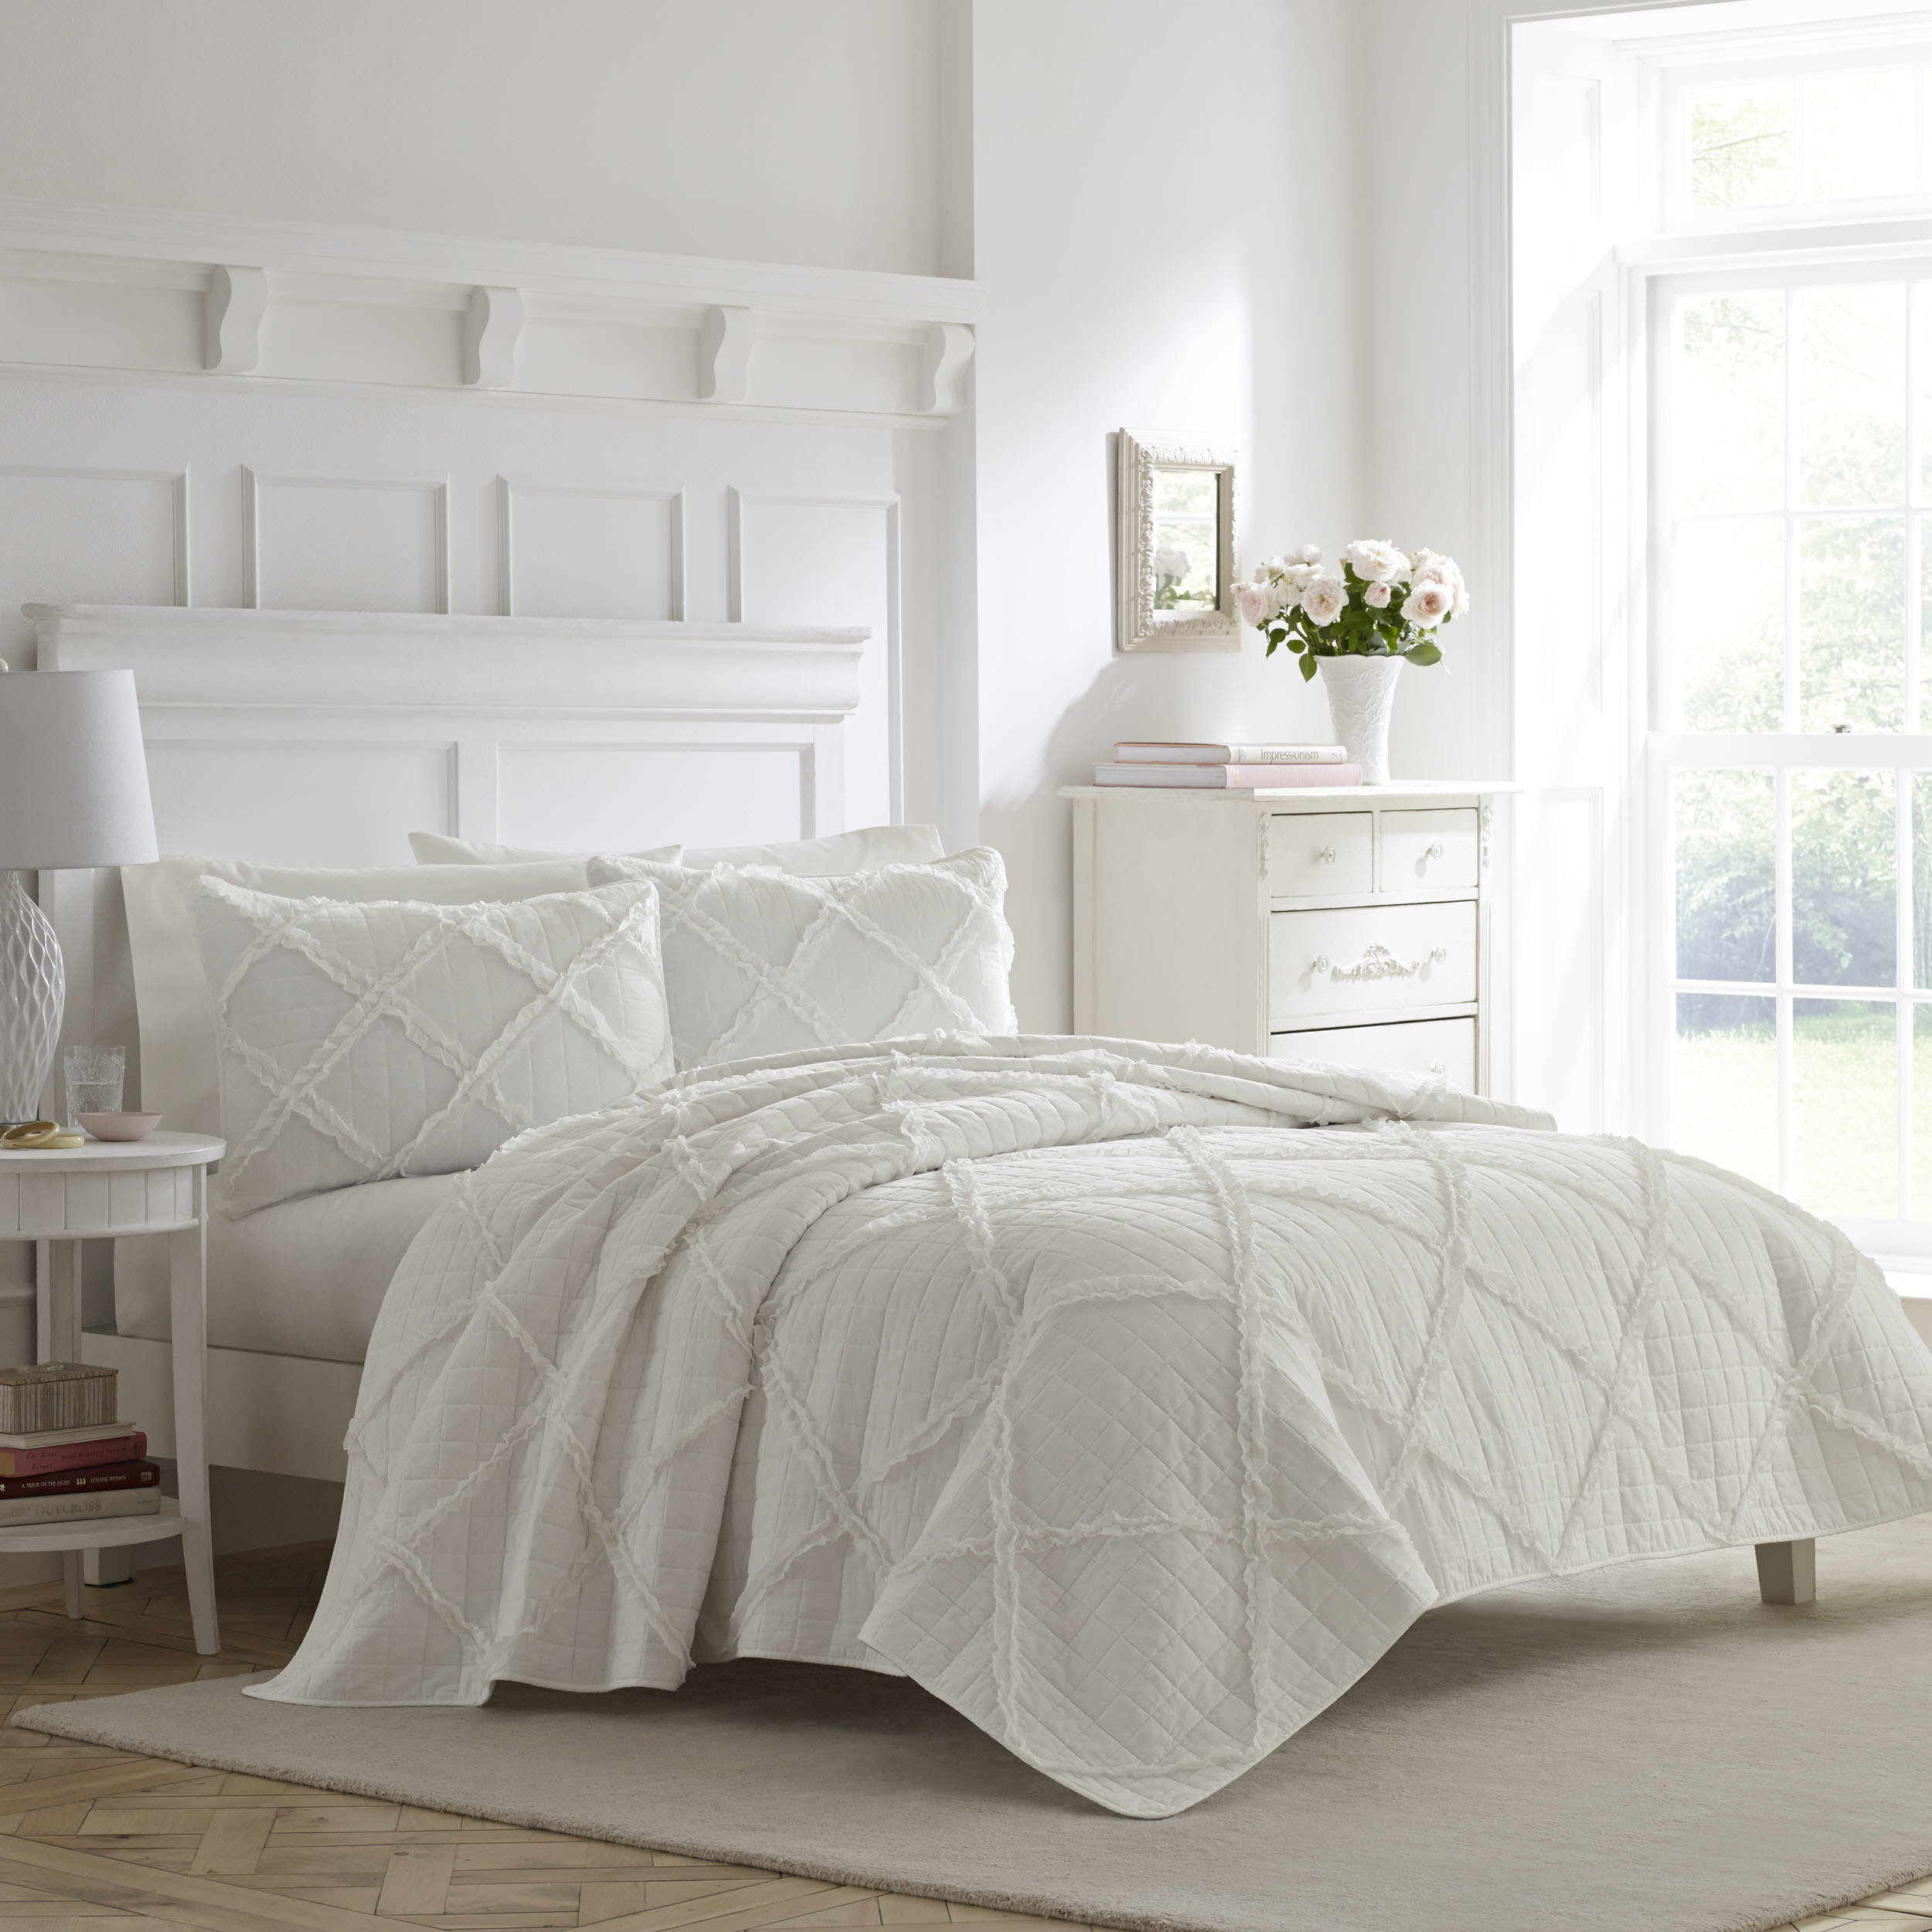 Laura Ashley Adelina White Cotton 3 Piece Duvet Cover Set Reviews Wayfair